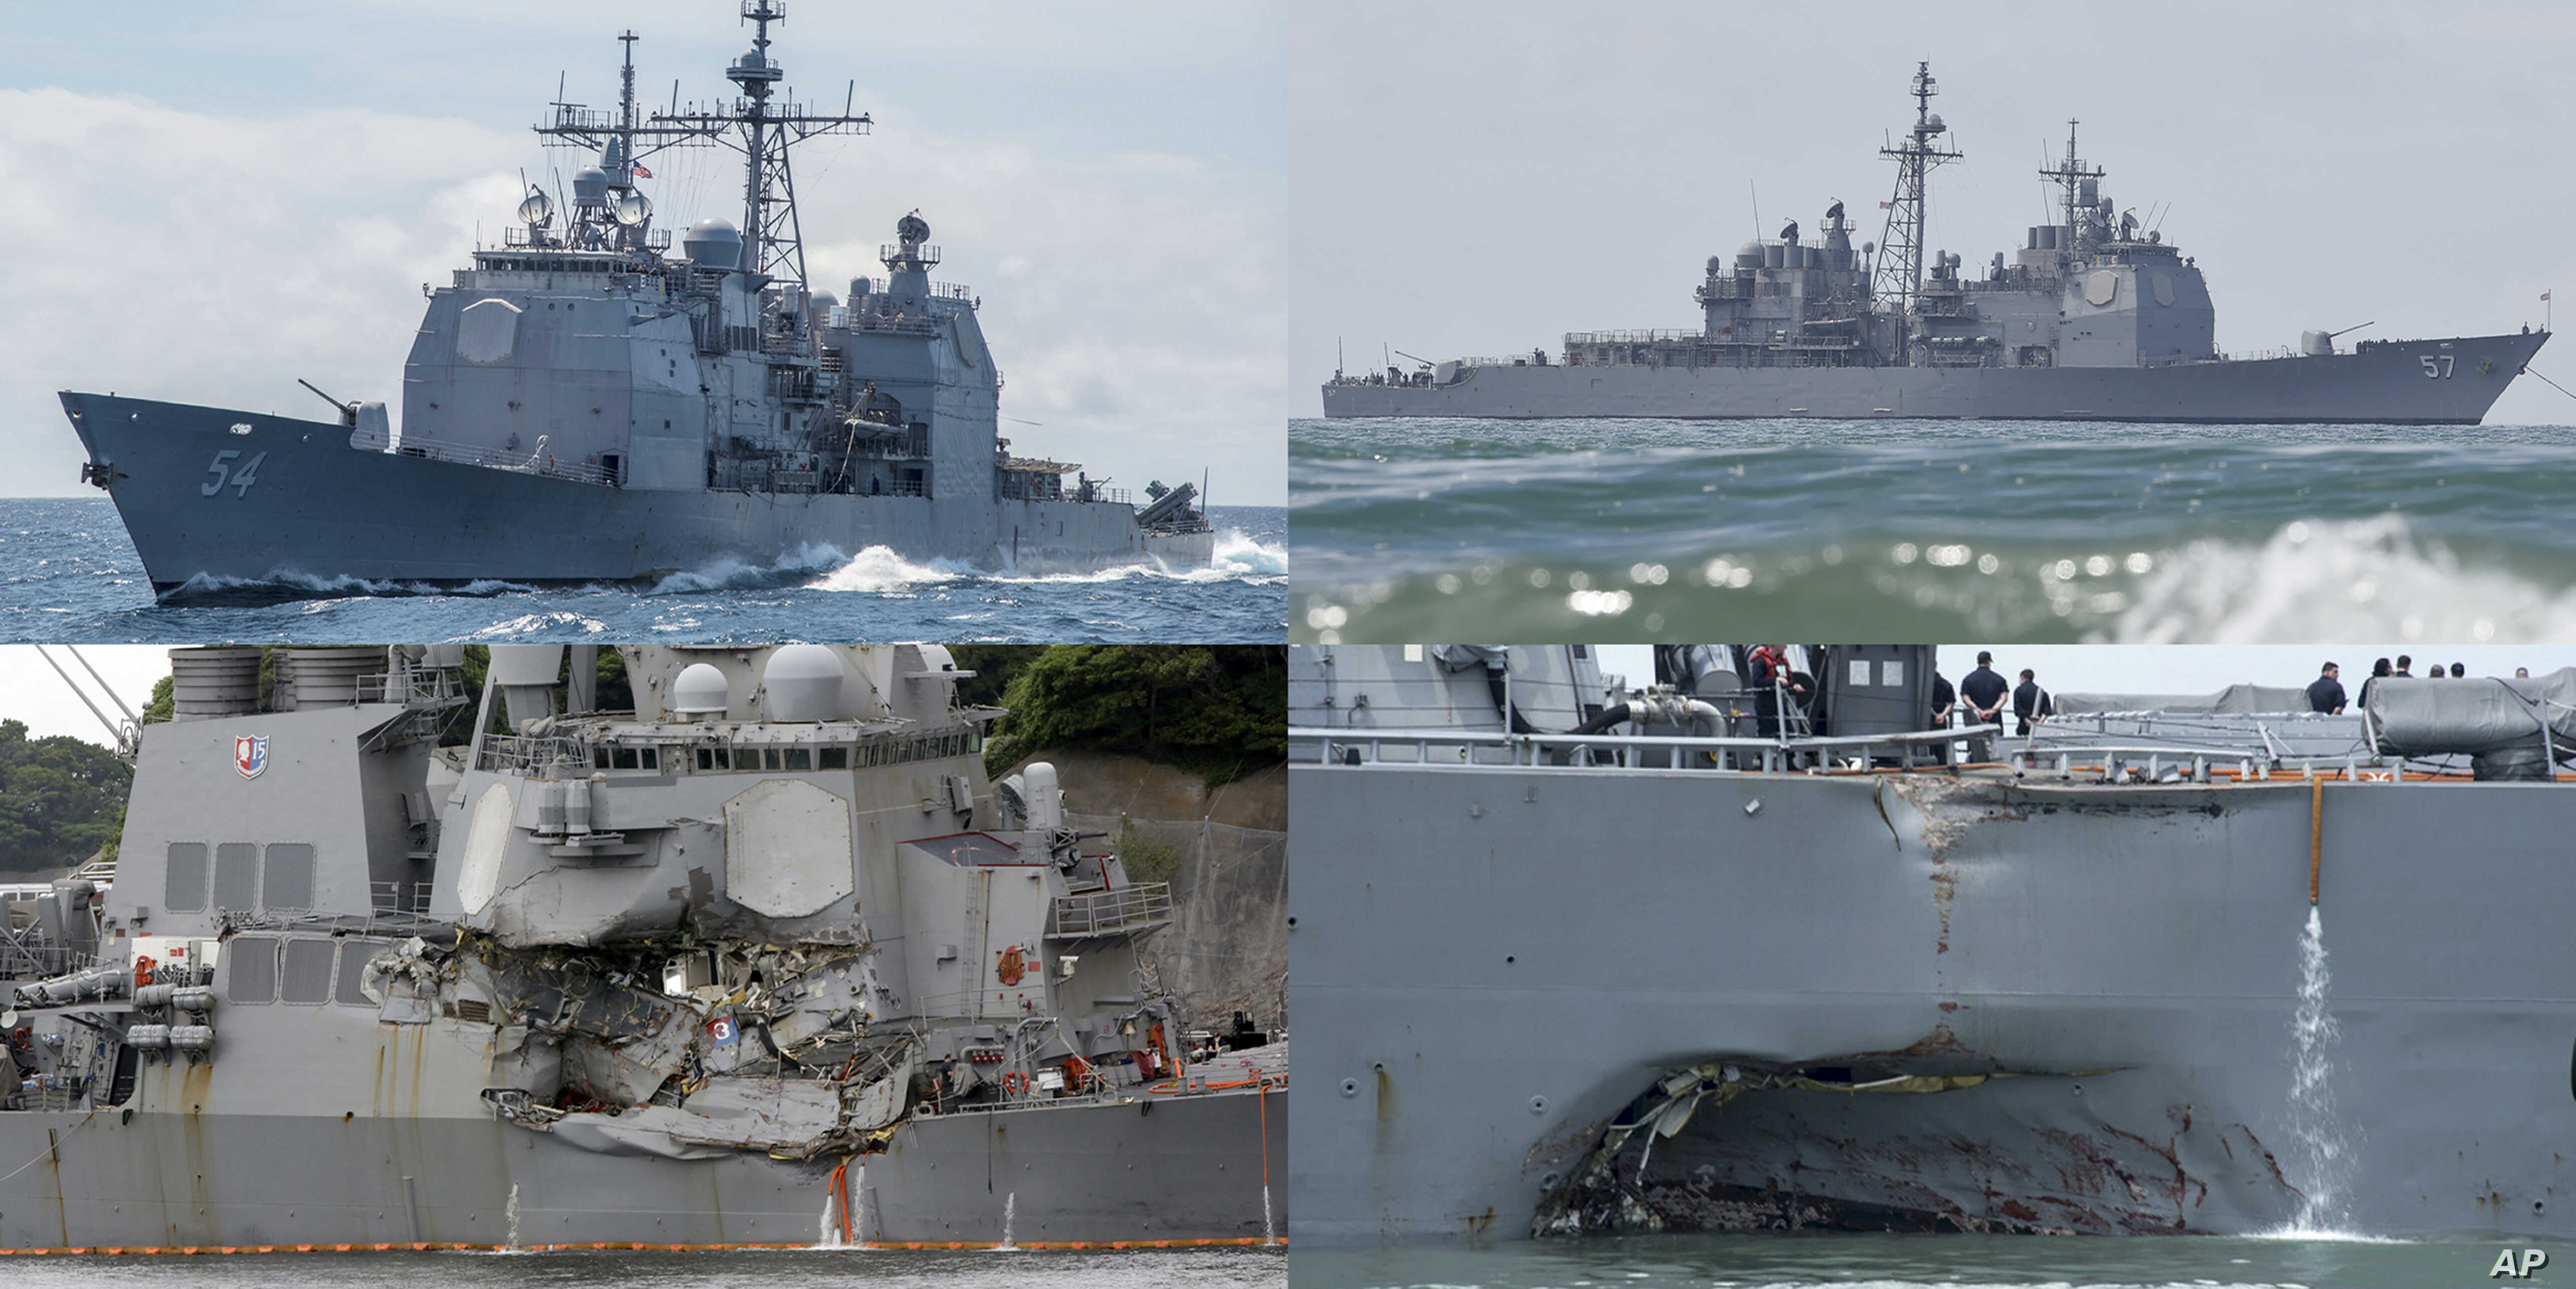 Sudden Turn' Led to Deadly Collision of US Naval Warship